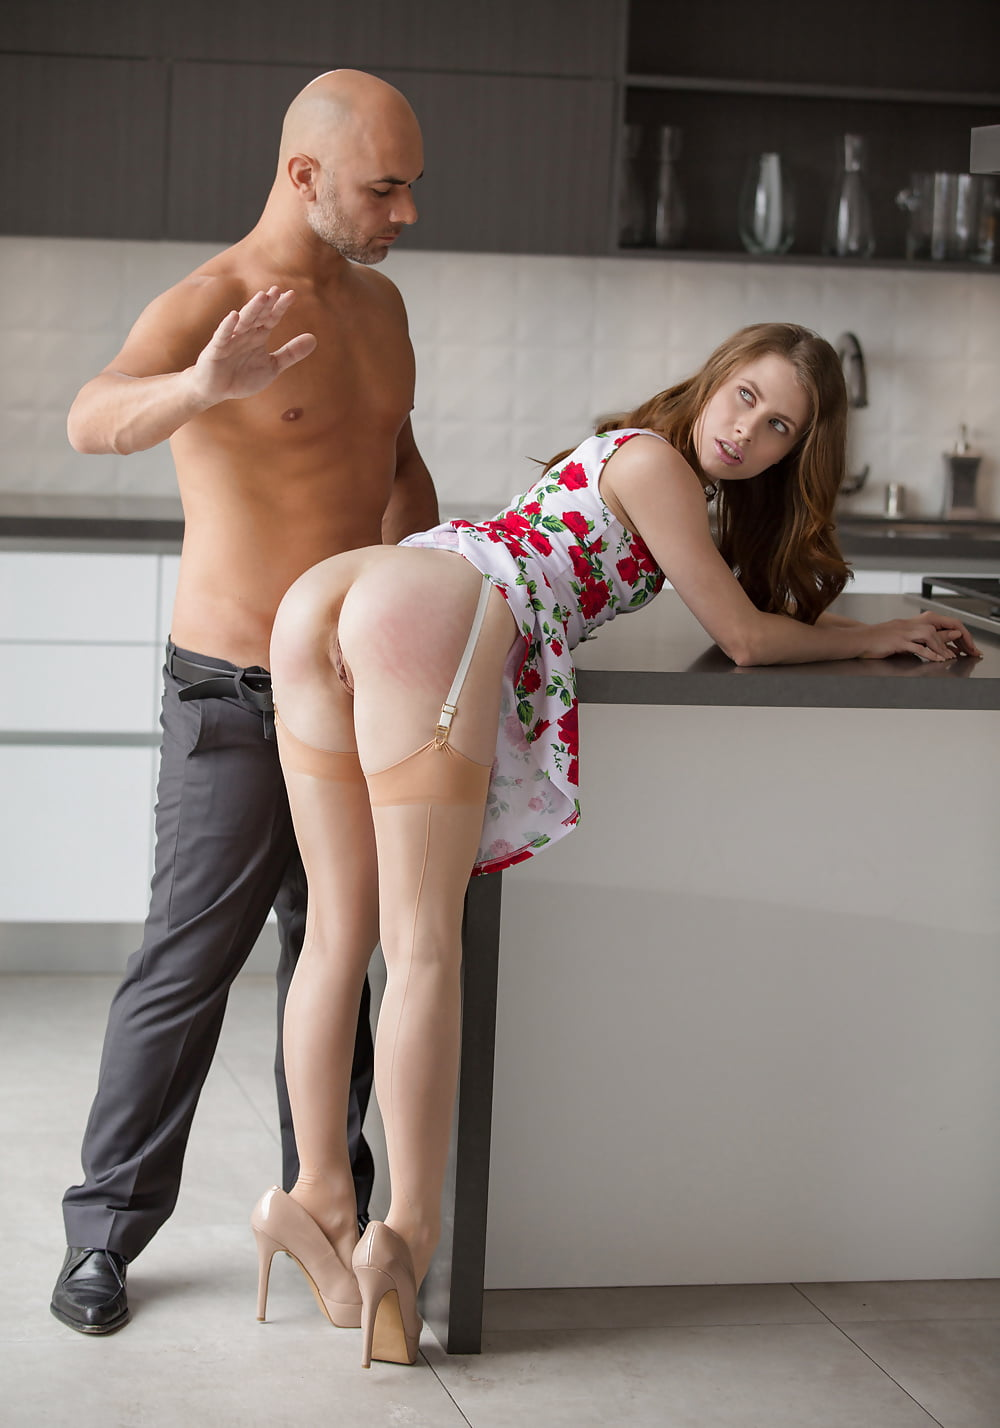 Girlfriendsfilms anya olsen teases milf into scissor session - 2 part 3